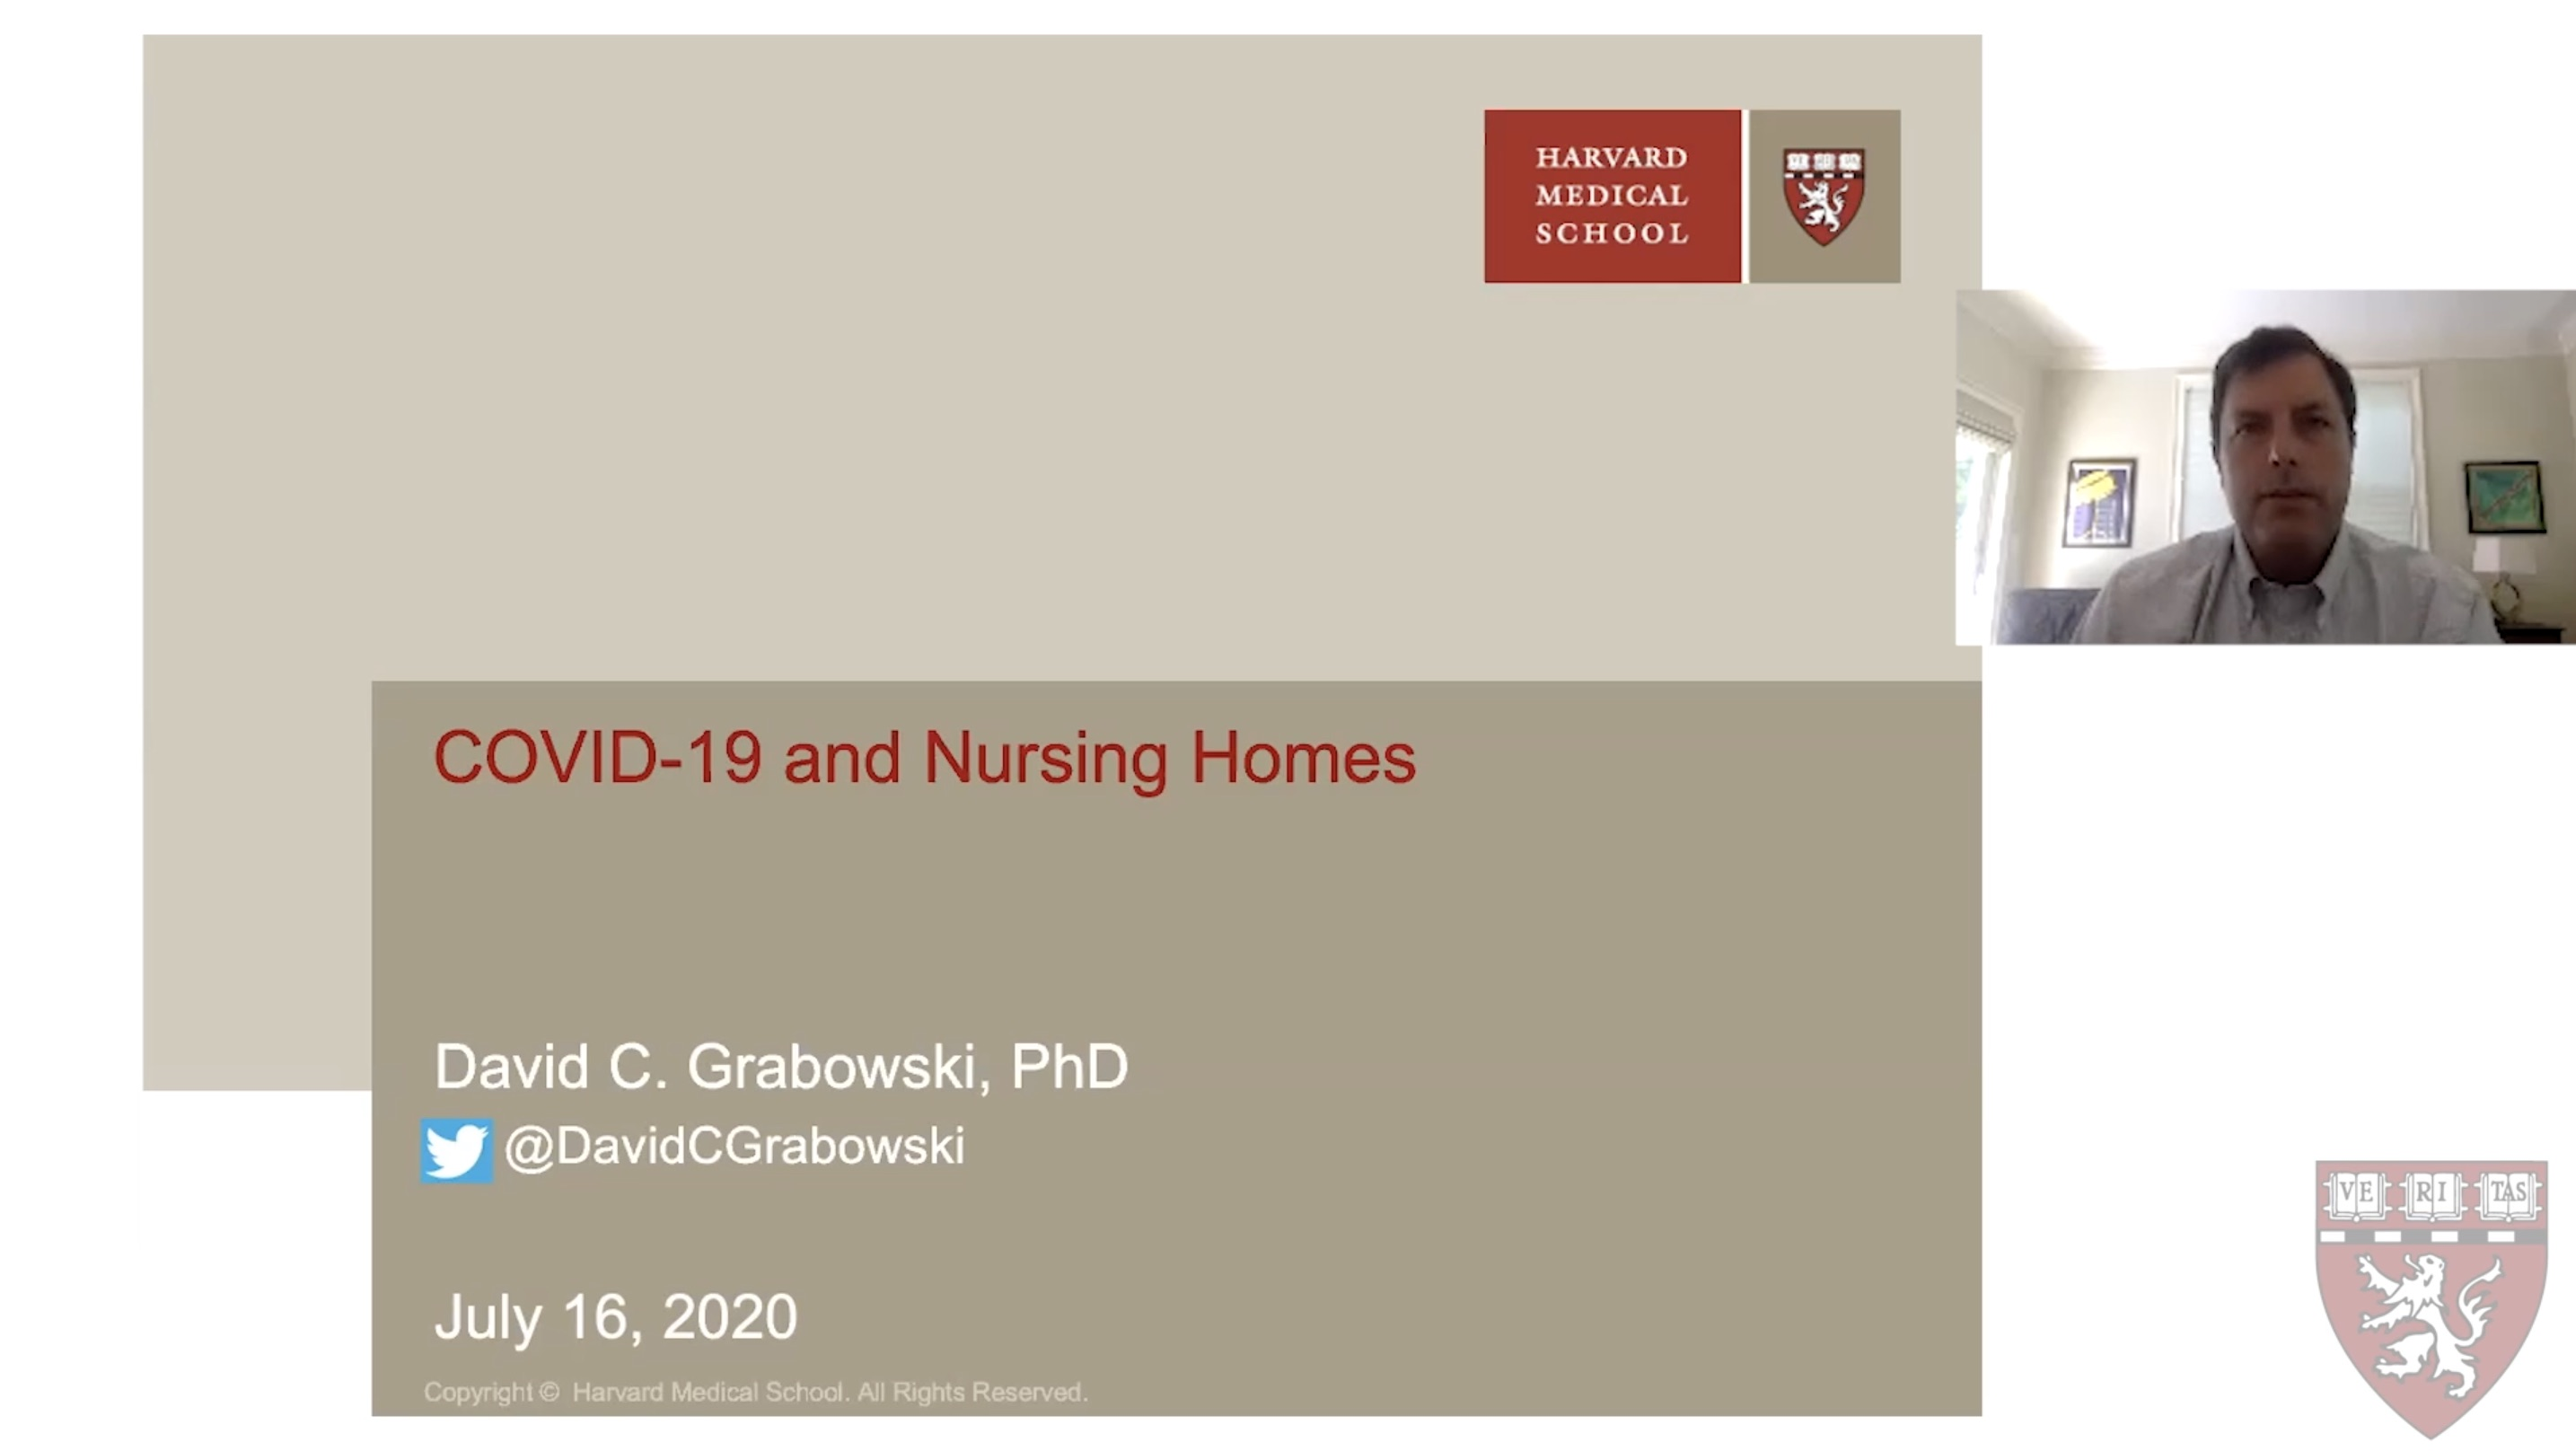 COVID and Nursing Home powerpoint title slide